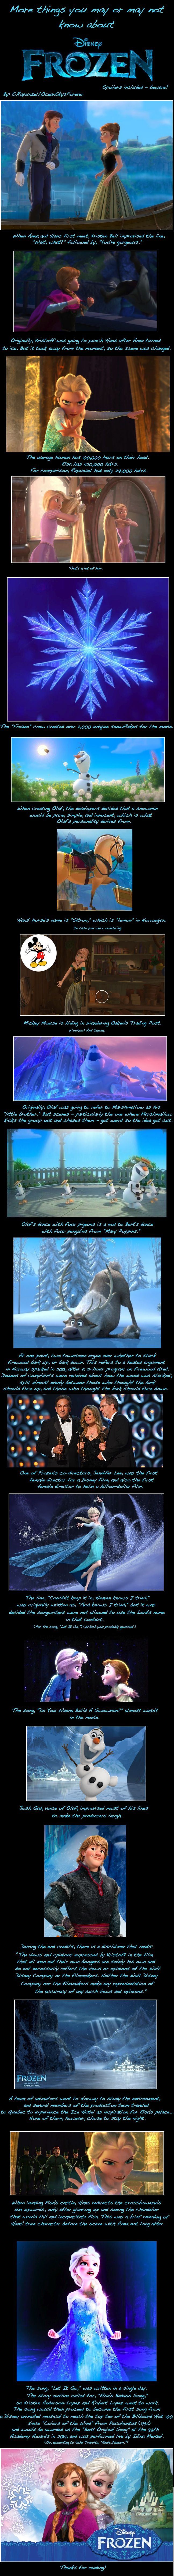 More things you may or may not know about Frozen. #disneyprincess #frozen